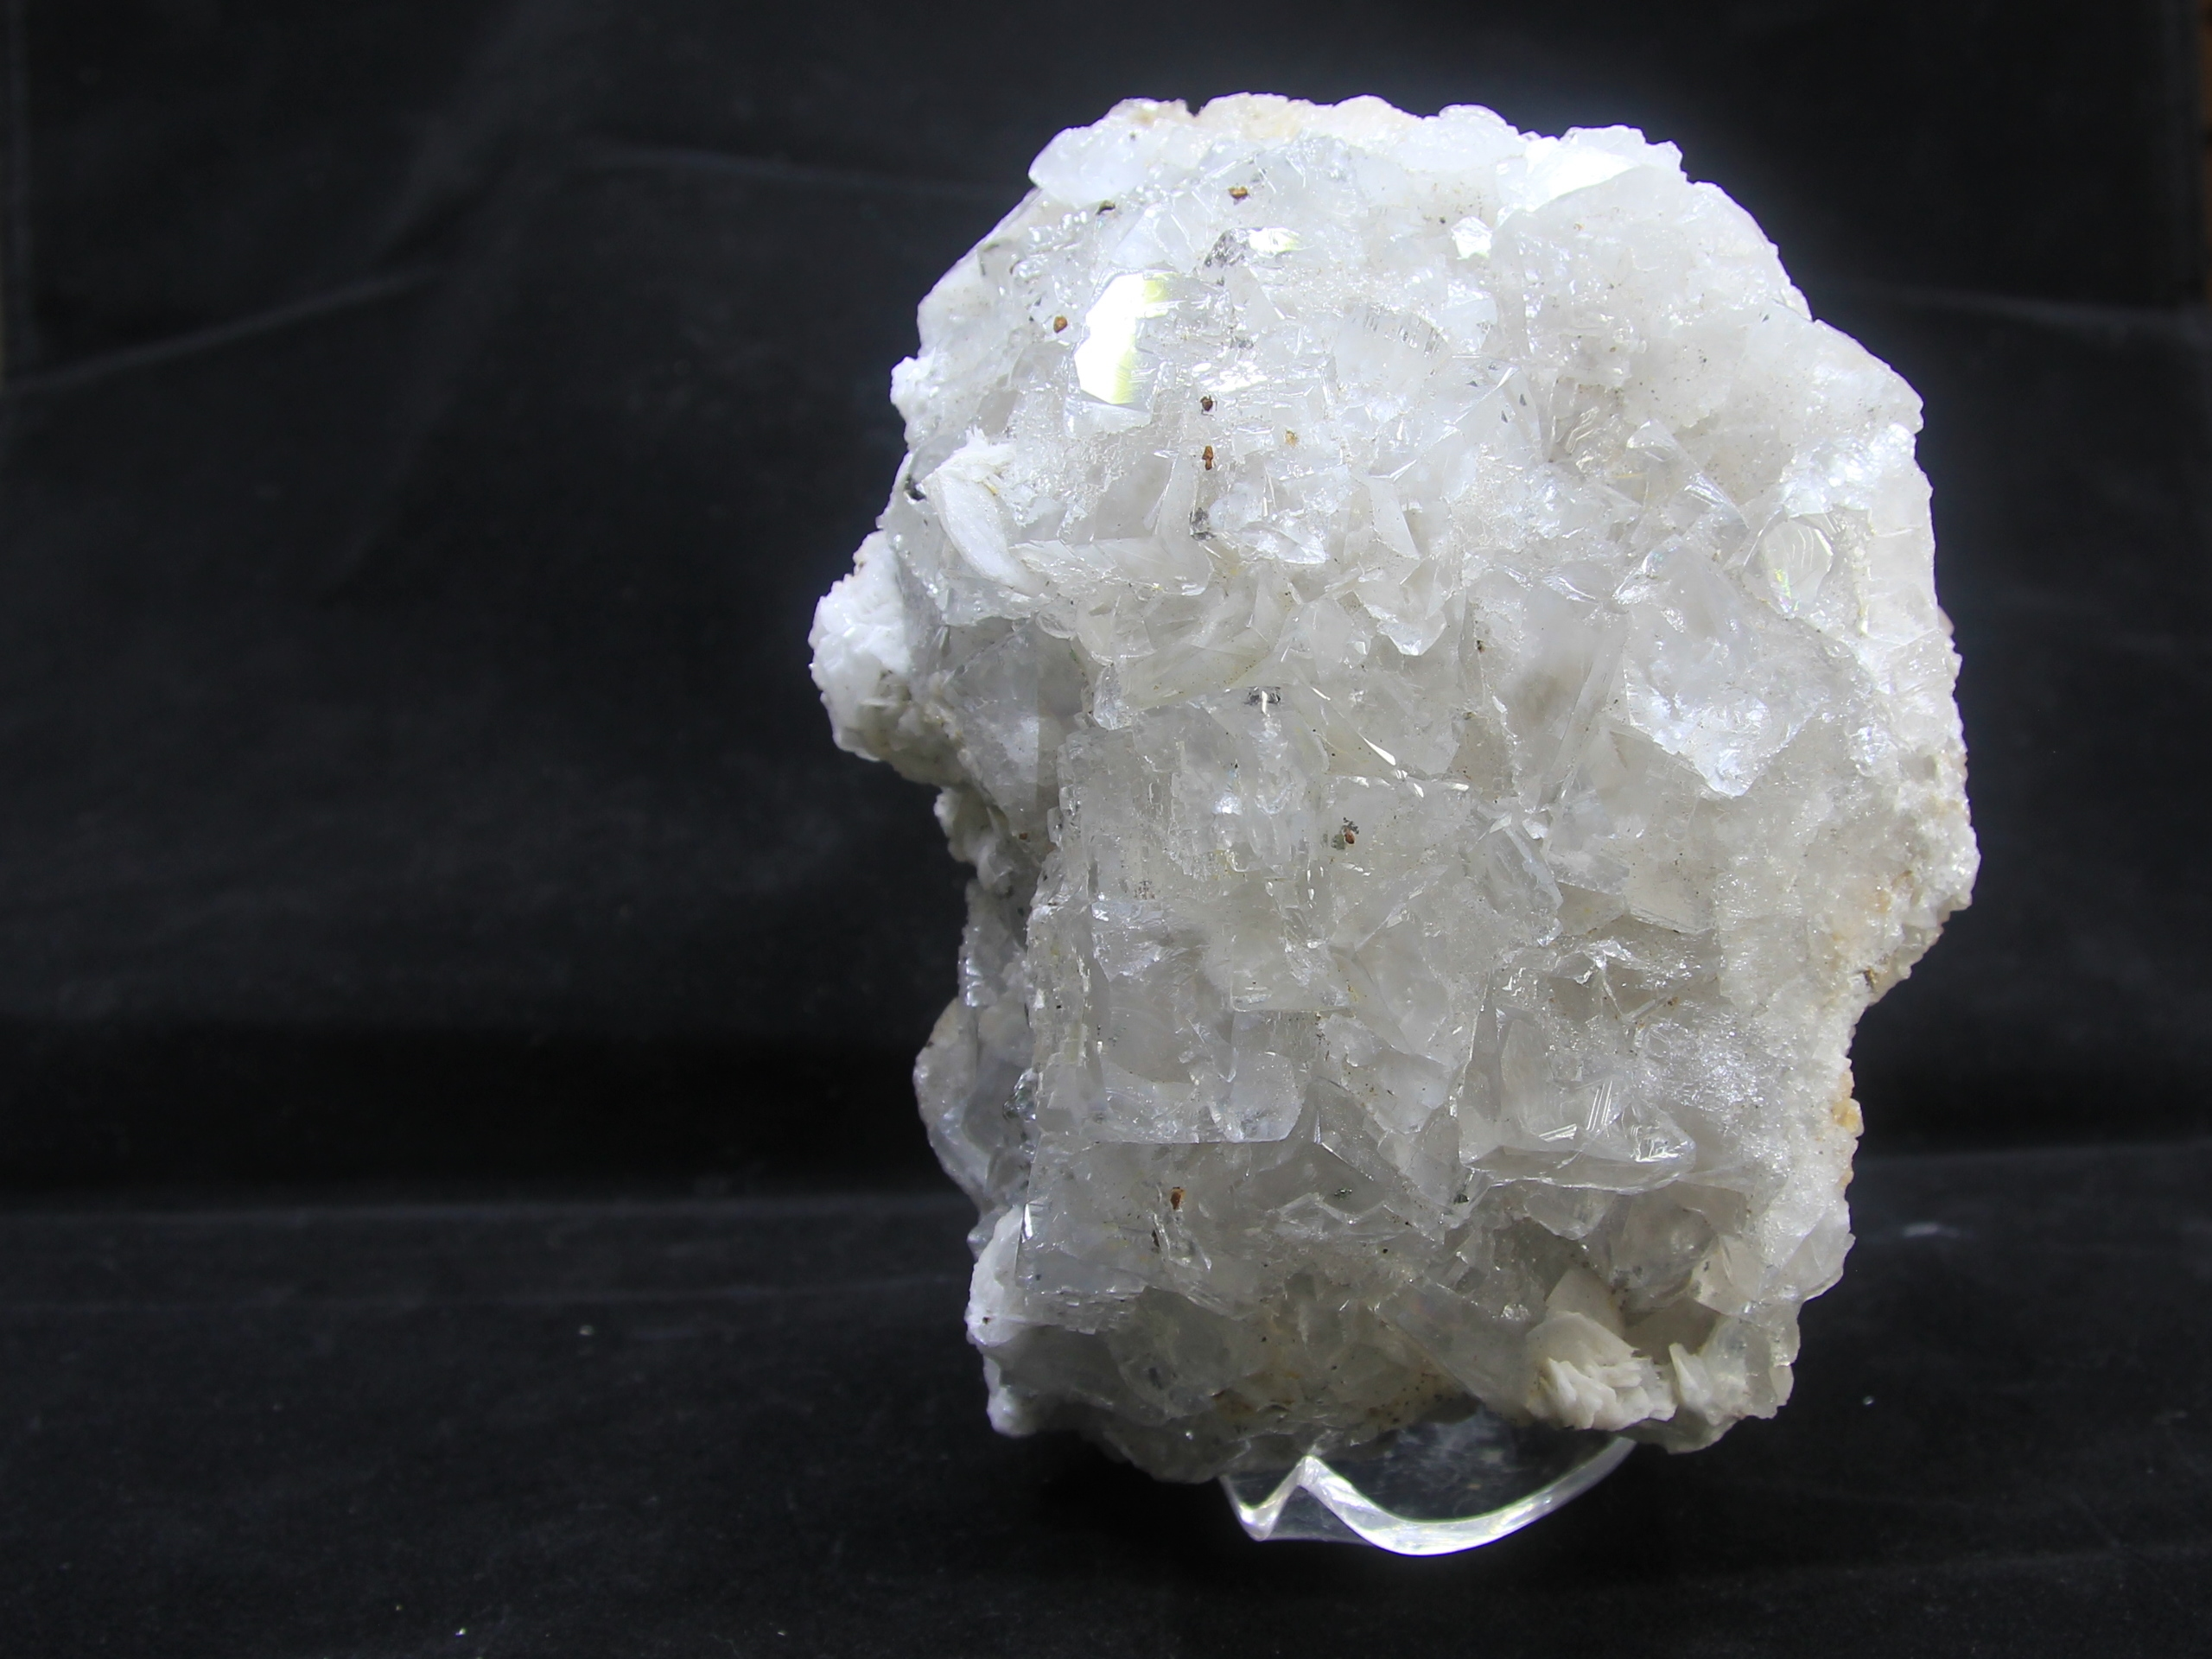 Colourless, partly transparent fluorite